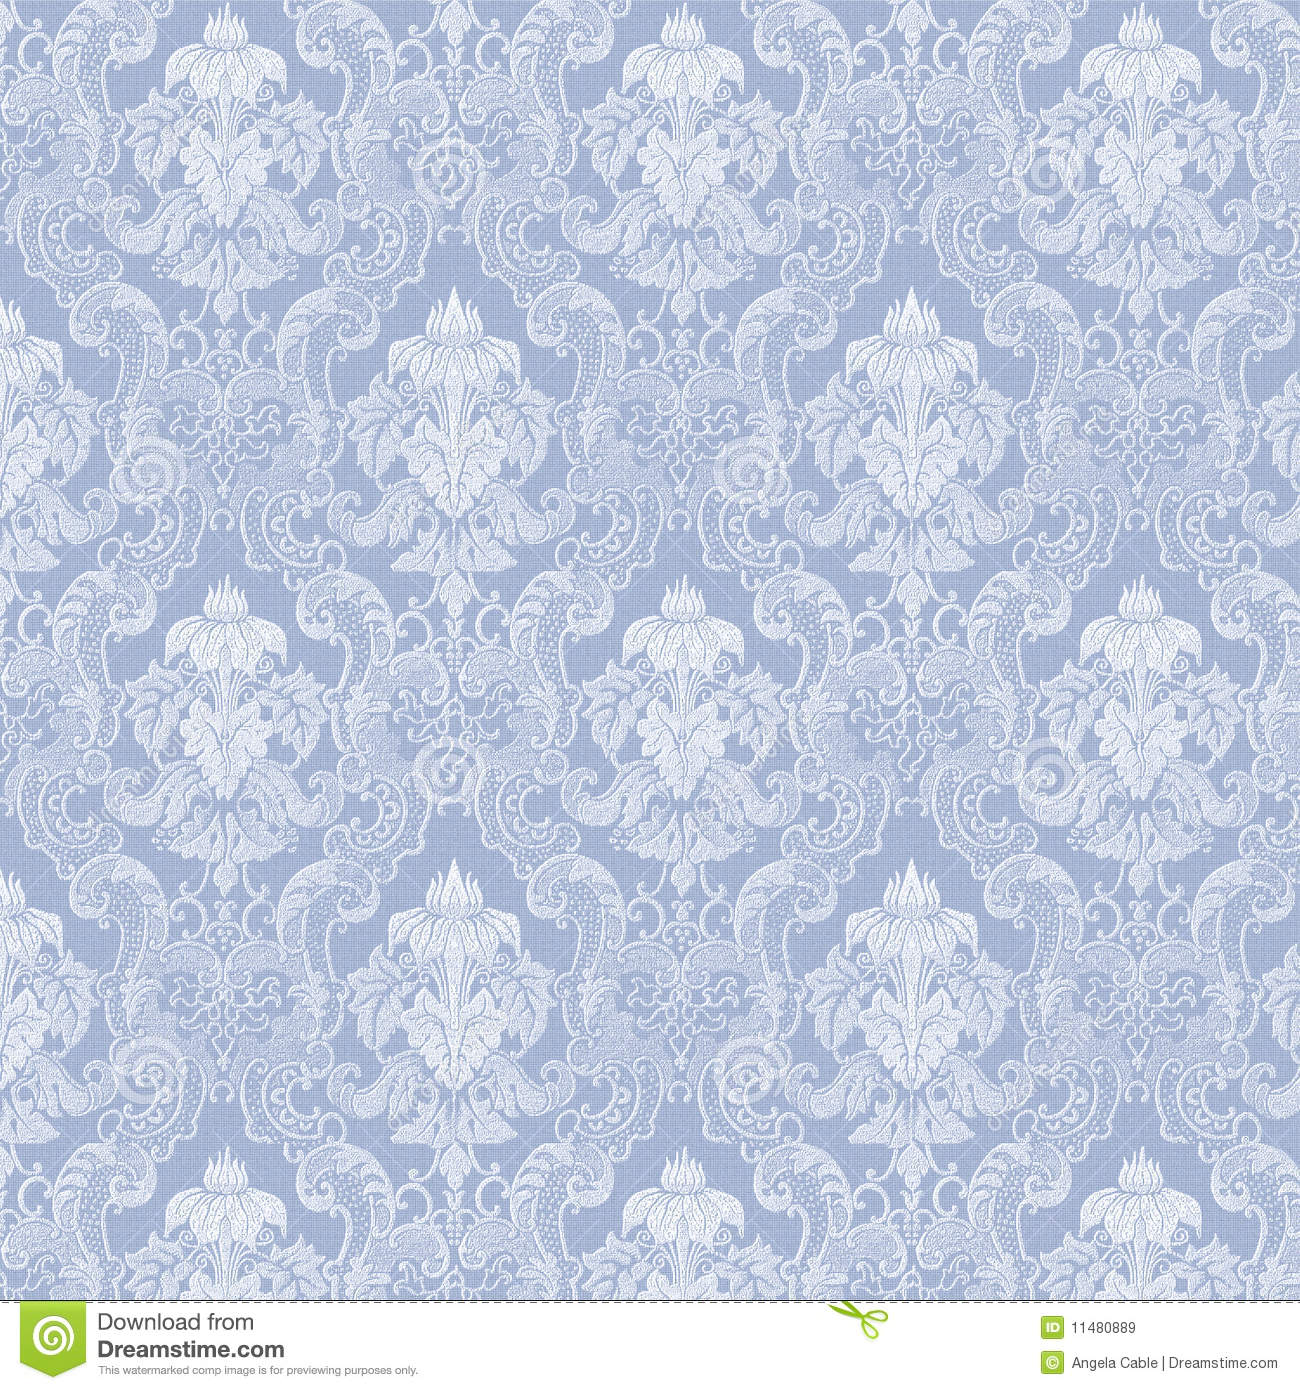 Design Patterns For Invitation Cards was beautiful invitation example